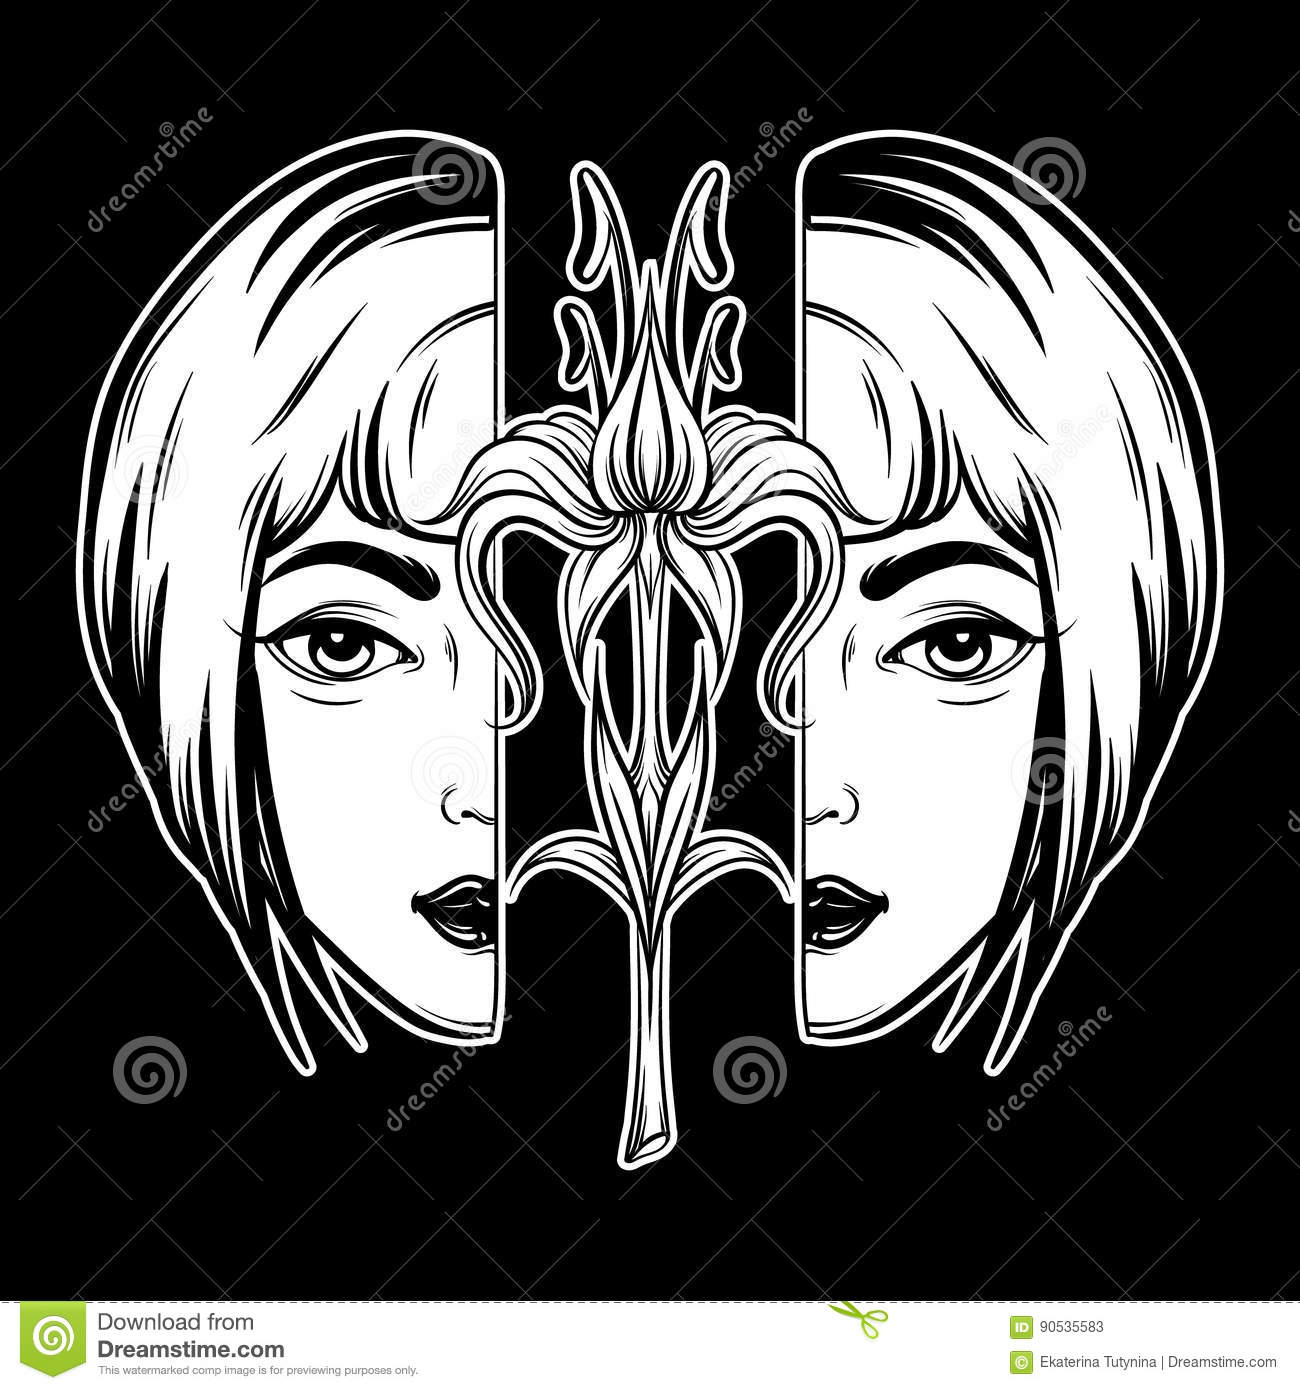 Vector Hand Drawn Illustration Of Two Parts Of Woman Head With Lily